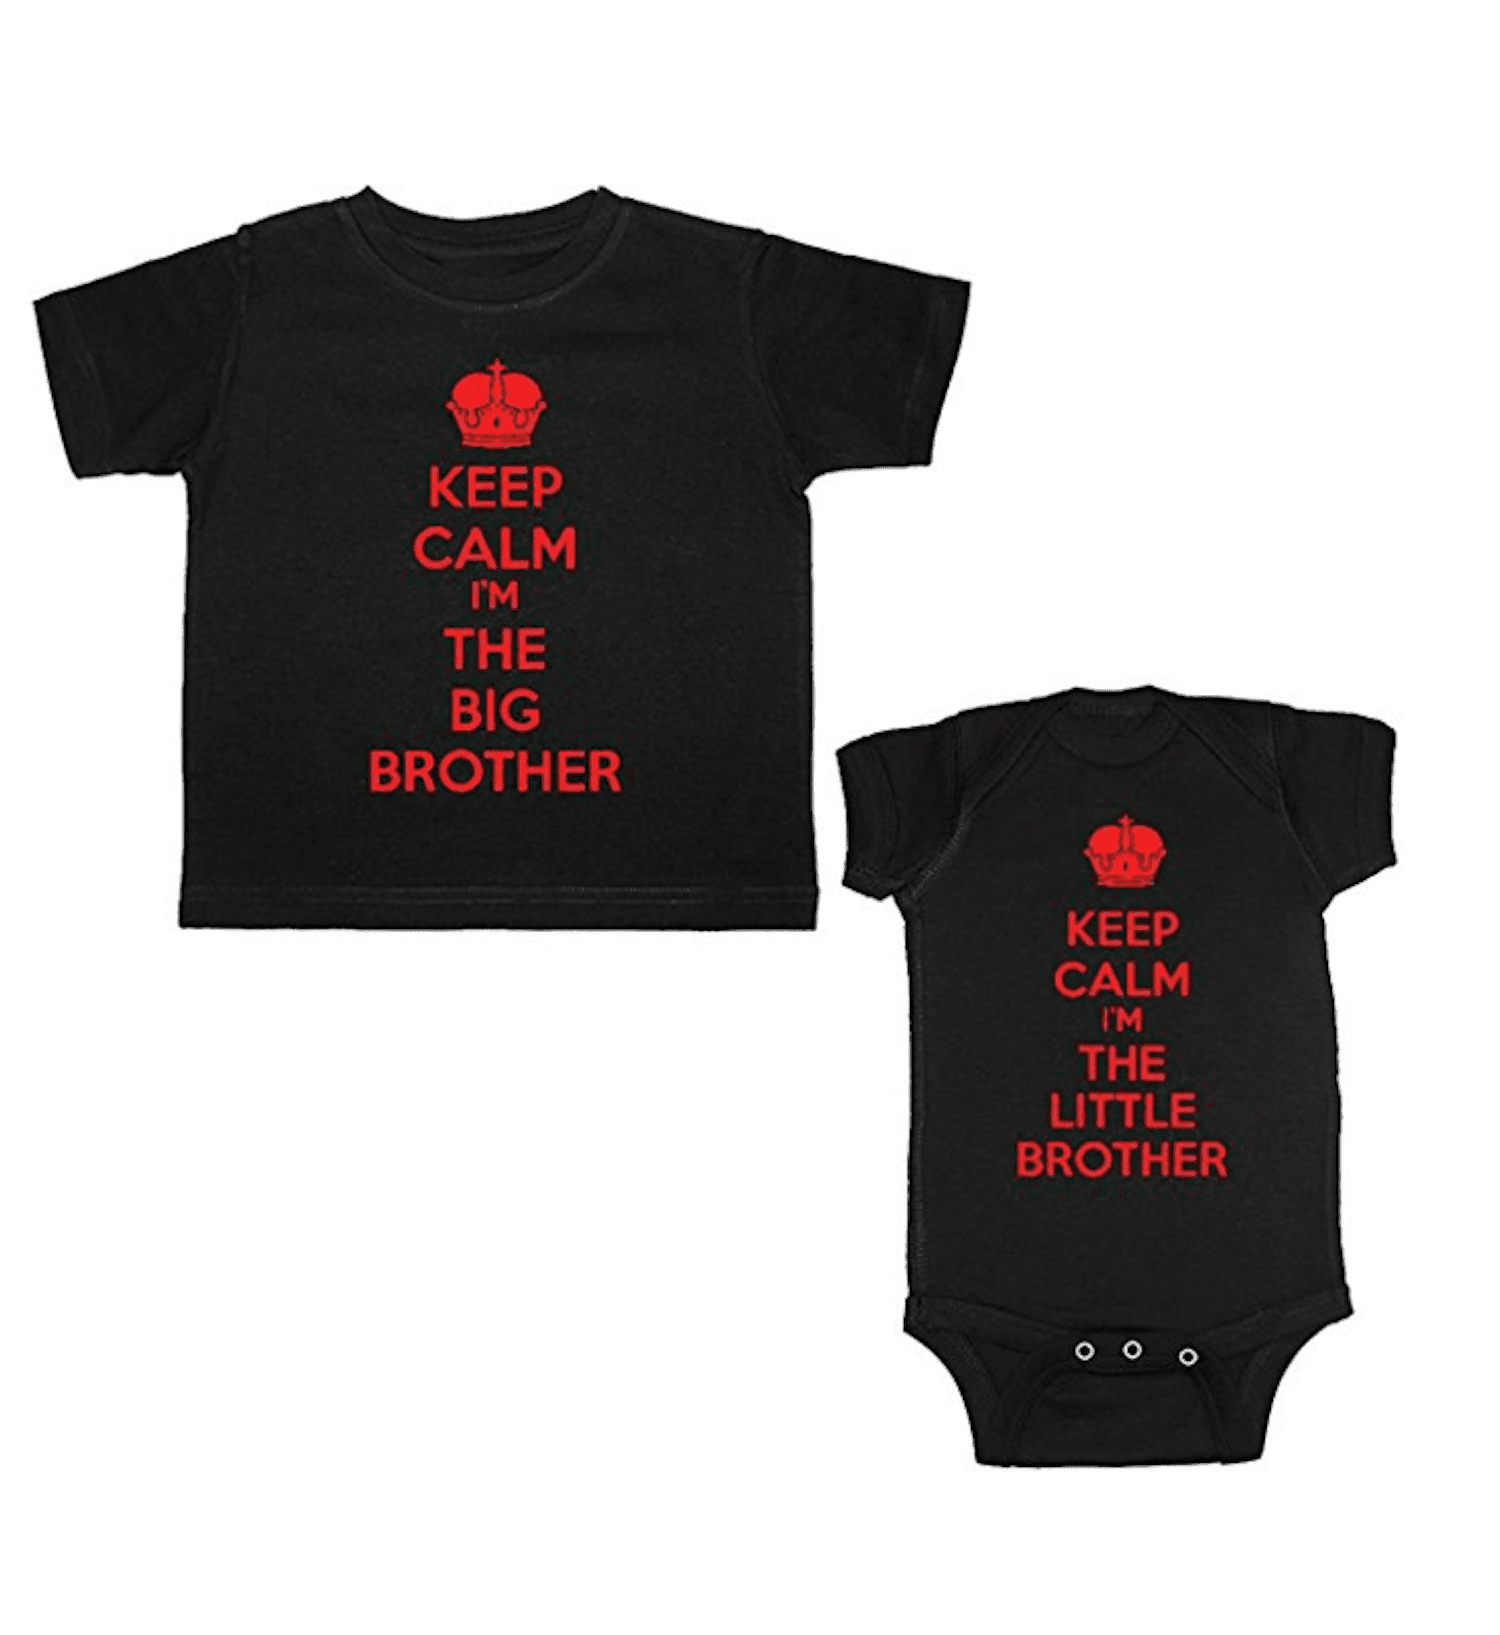 12 Cool Matching T Shirts for Big and Little Brothers and Sisters